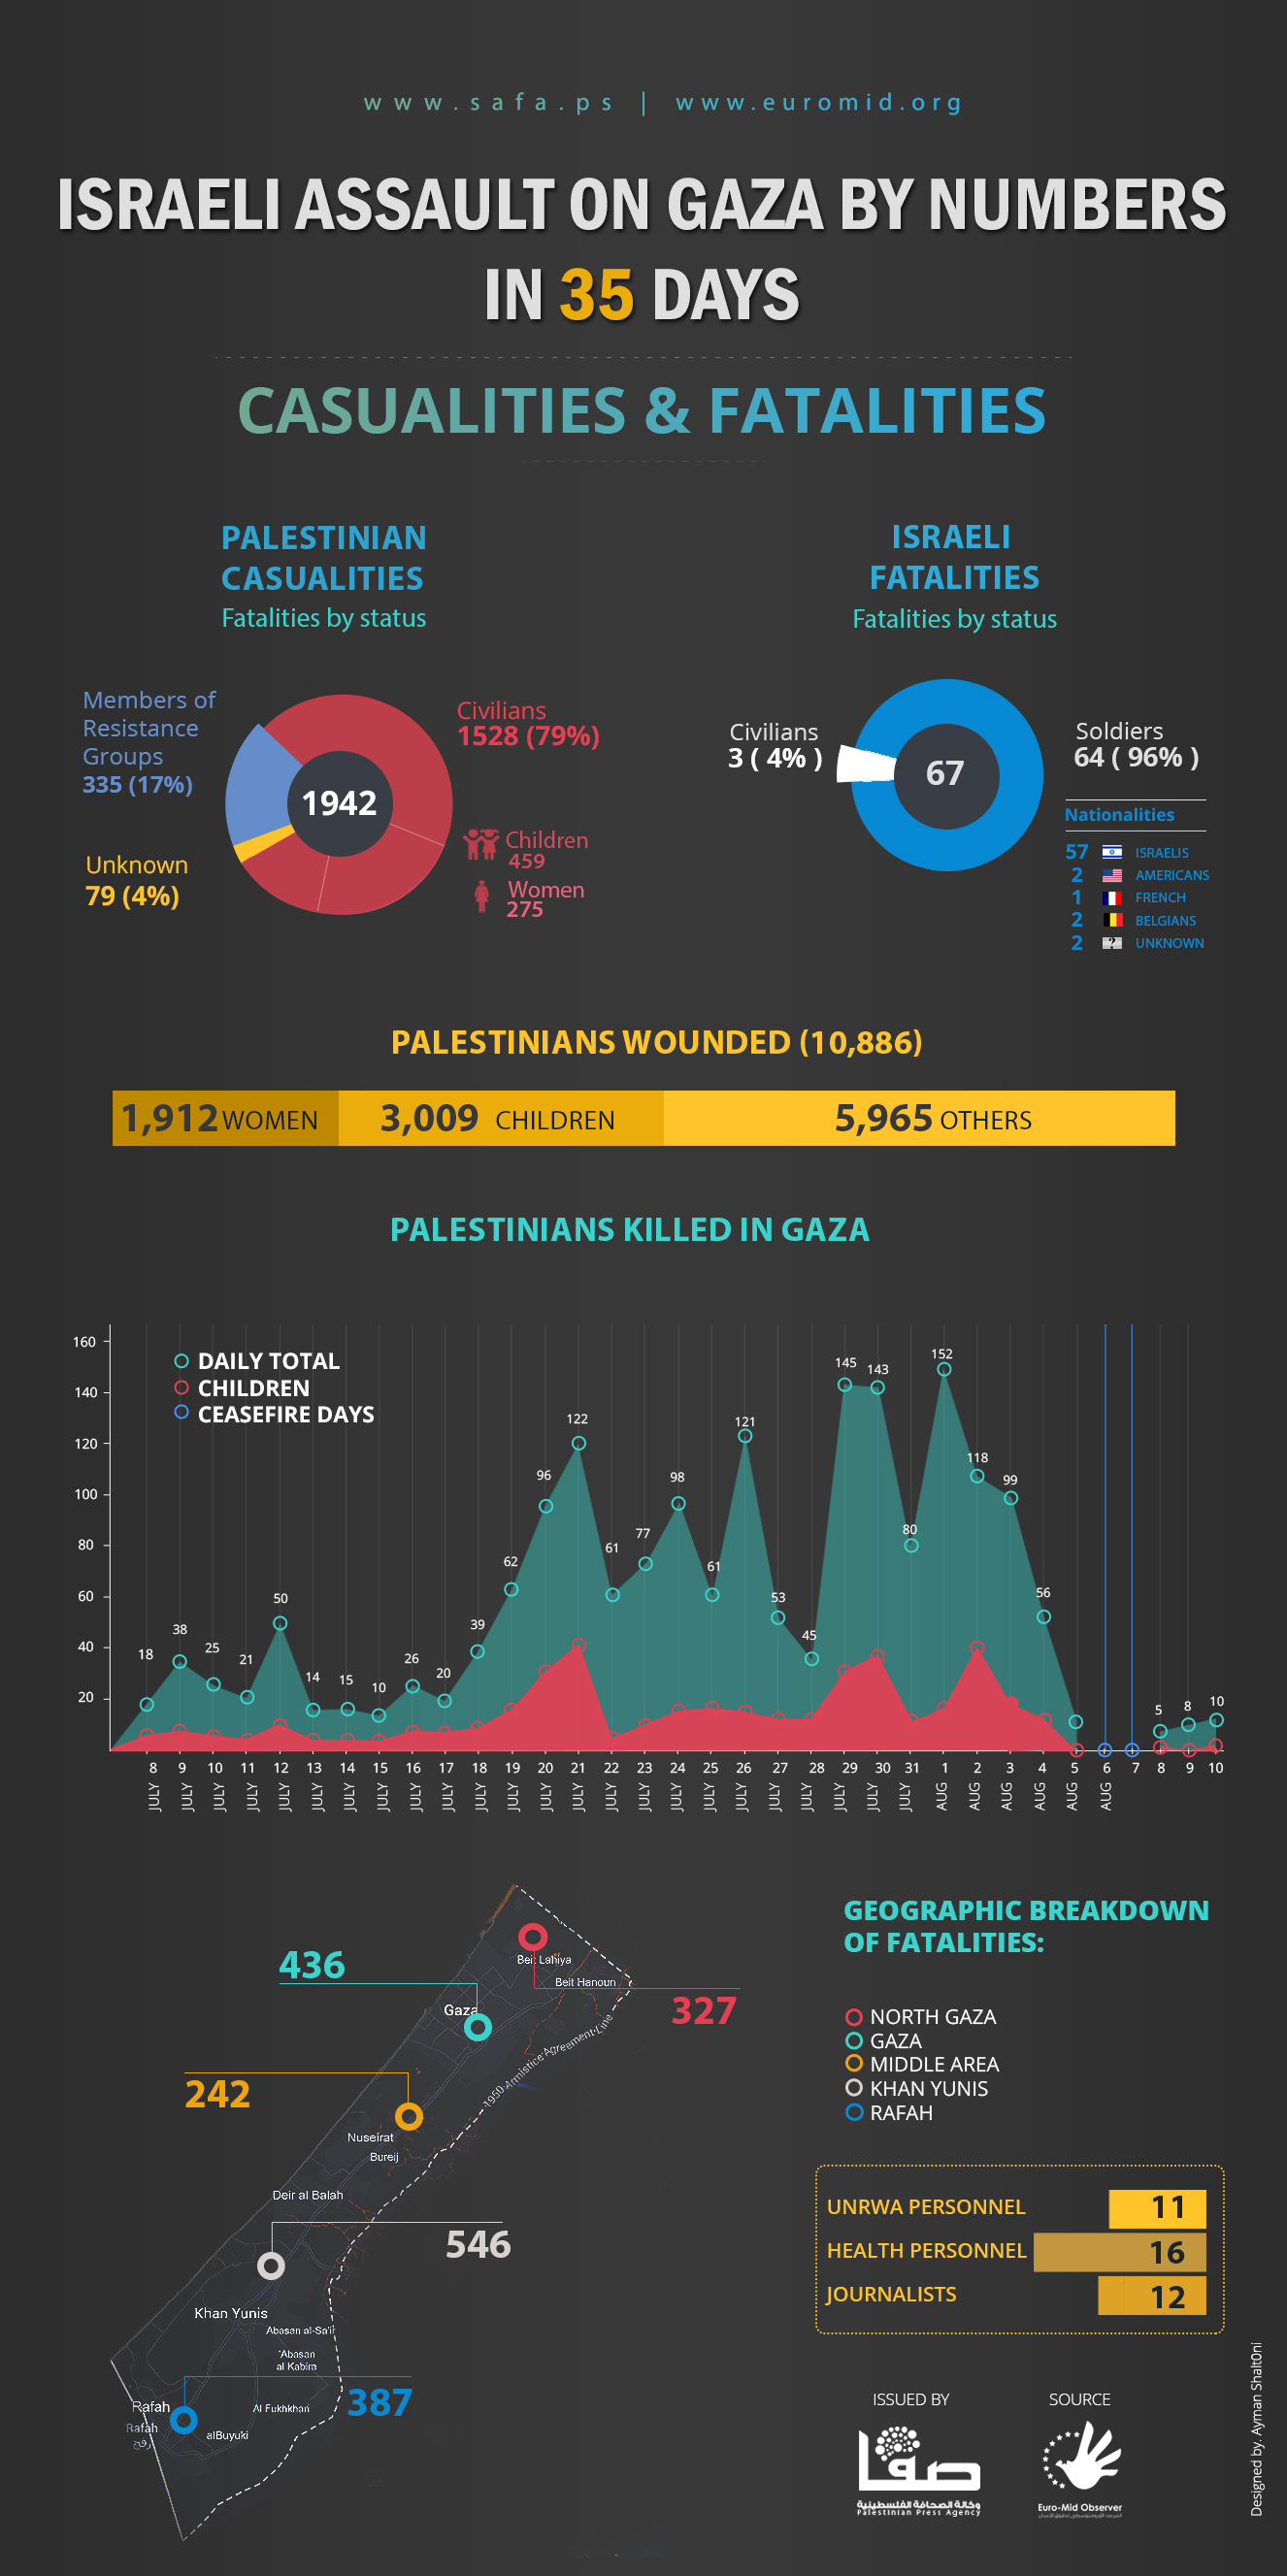 Israeli Assault on Gaza by Numbers in 35 Days